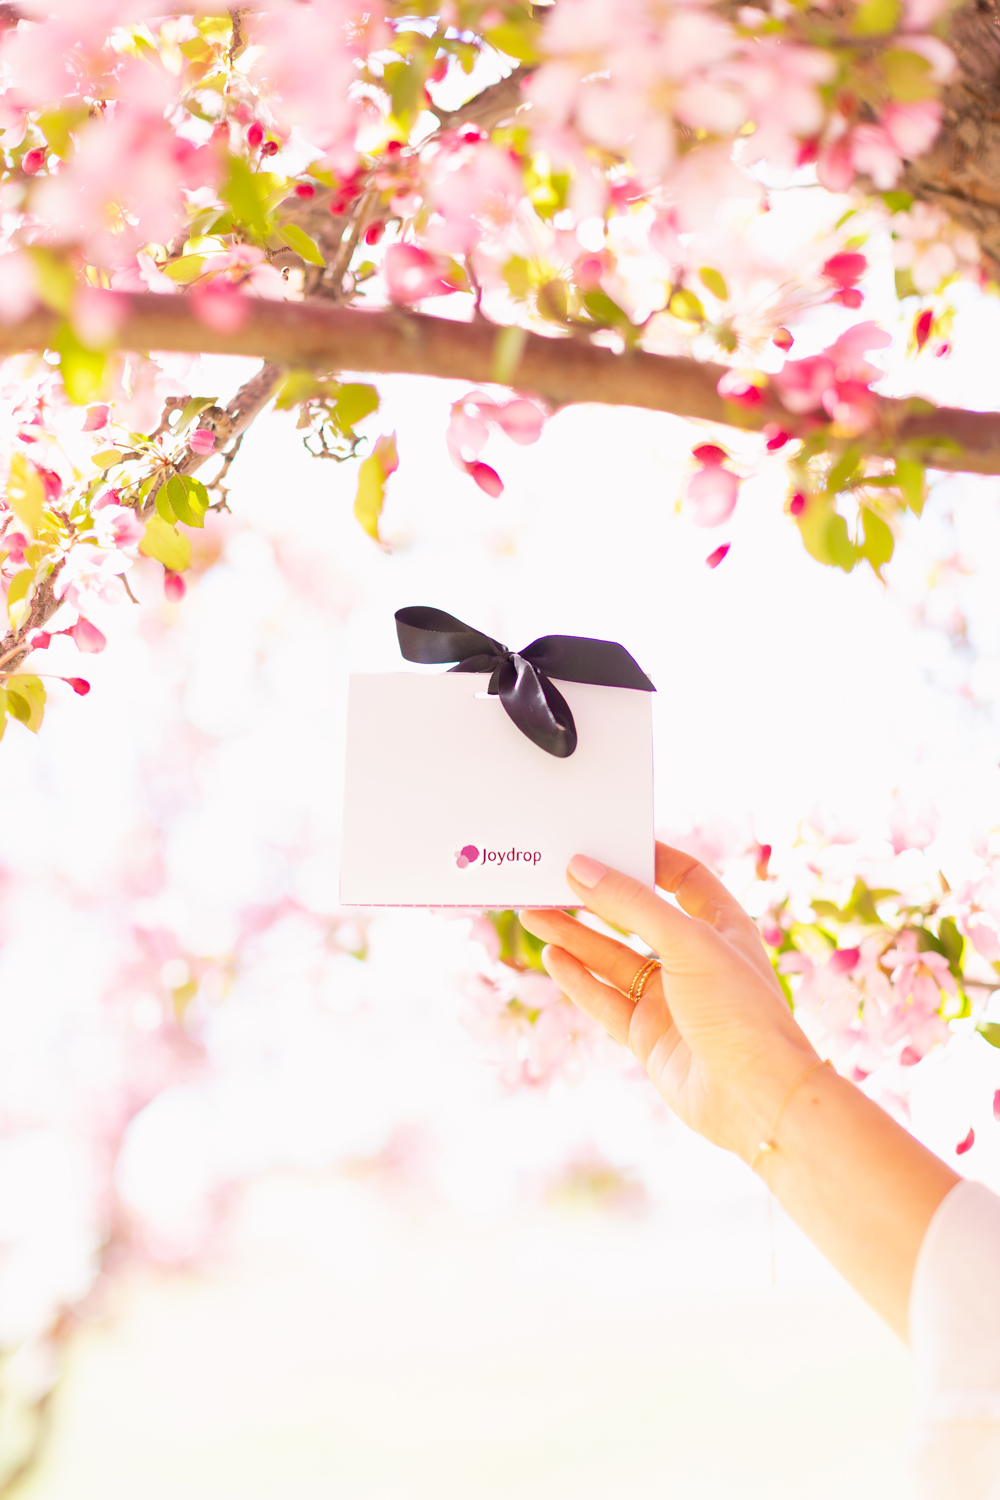 My Joydrop Calgary Jewelry Collection & $150 International Giveaway | Woman's hand holding a gift wrapped jewelry box amongst a blooming cherry blossom tree | JustineCelina's Signature Jewelry | Spring / Summer 2021 Jewelry Trends | Top Accessory Trends Spring / Summer 2021 | The Best Gold Plated Croissant Rings | Jewelry Trends Summer 2021 | Boho Jewelry Trends 2021 | The Best Gold Plated Jewelry Canada | Calgary Lifestyle and Fashion Blogger // JustineCelina.com